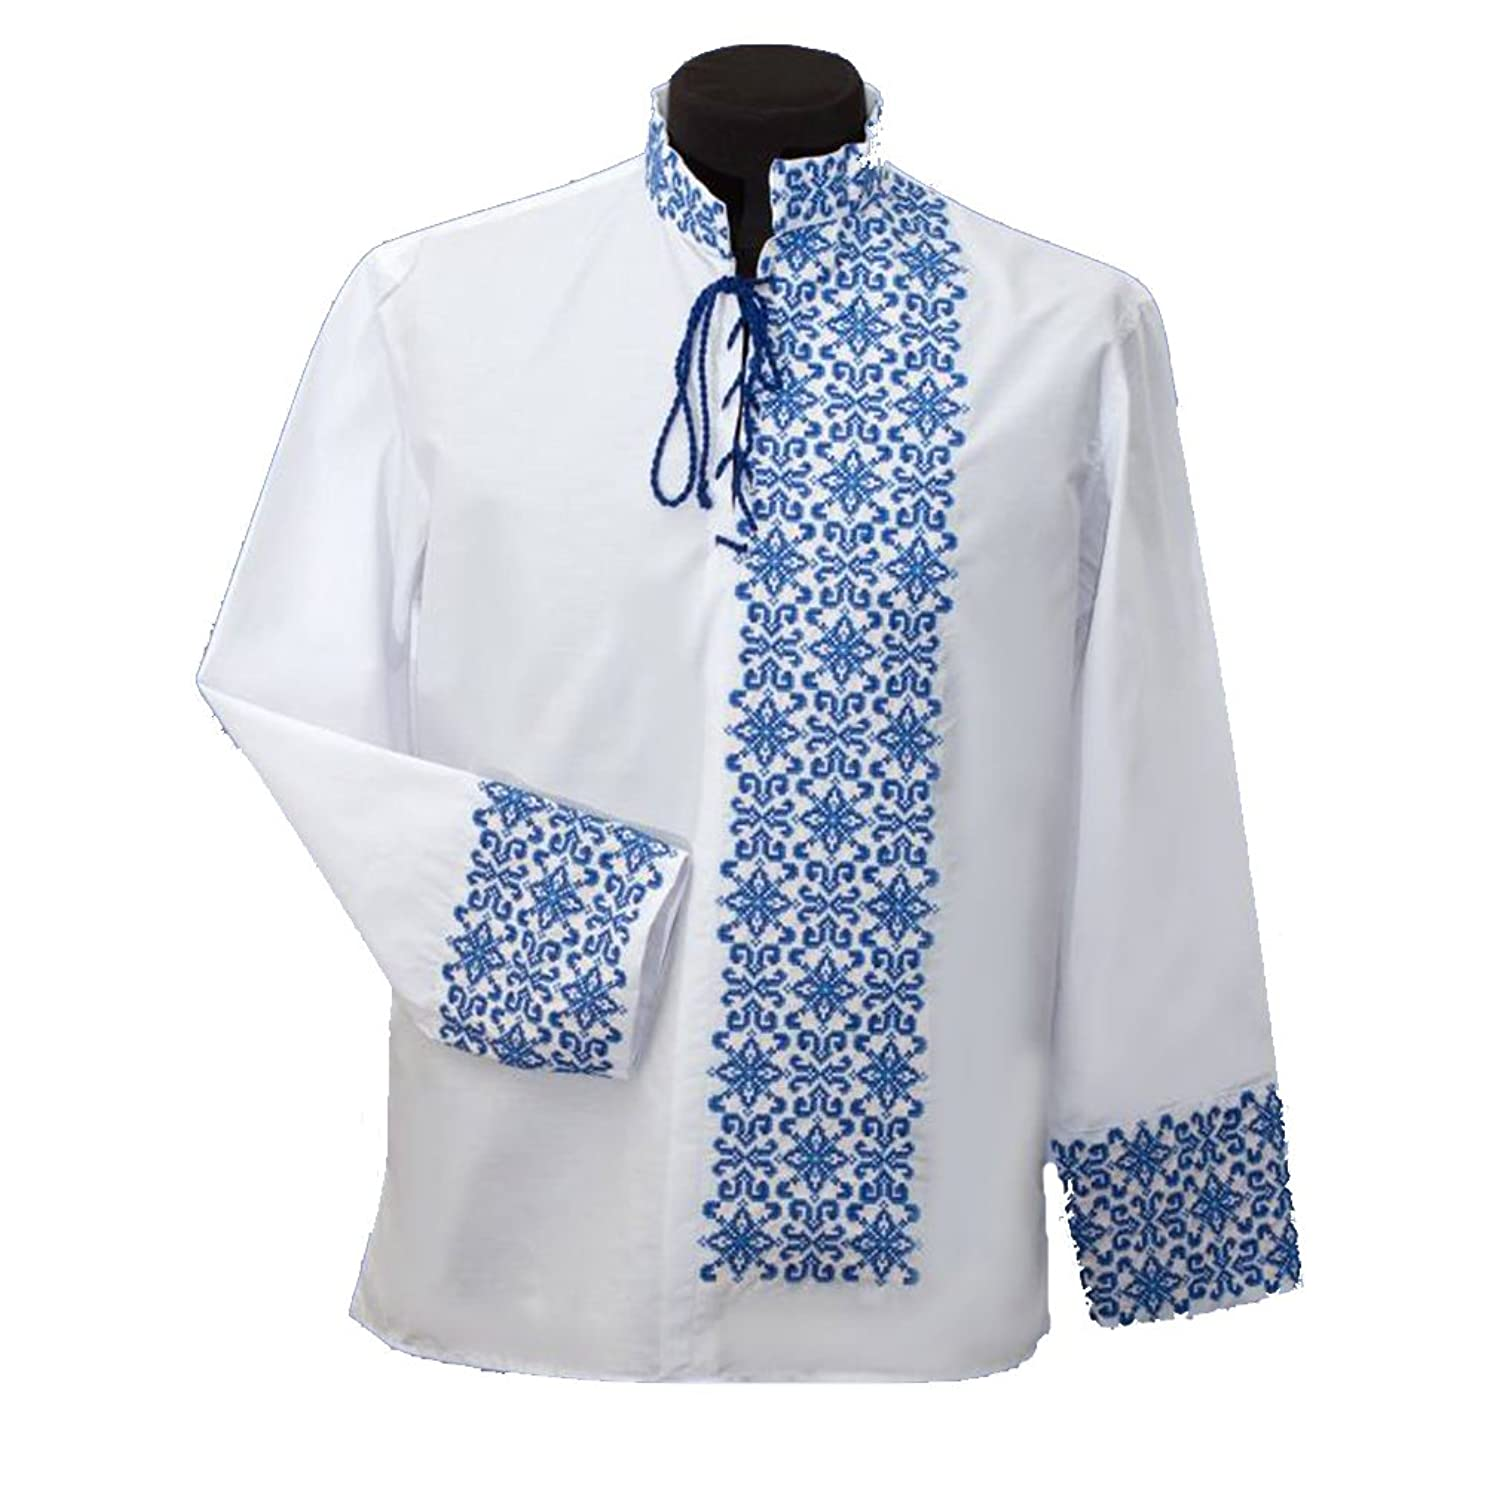 Ukrainian embroidered traditional ethnic folk shirts for men, new, cotton.